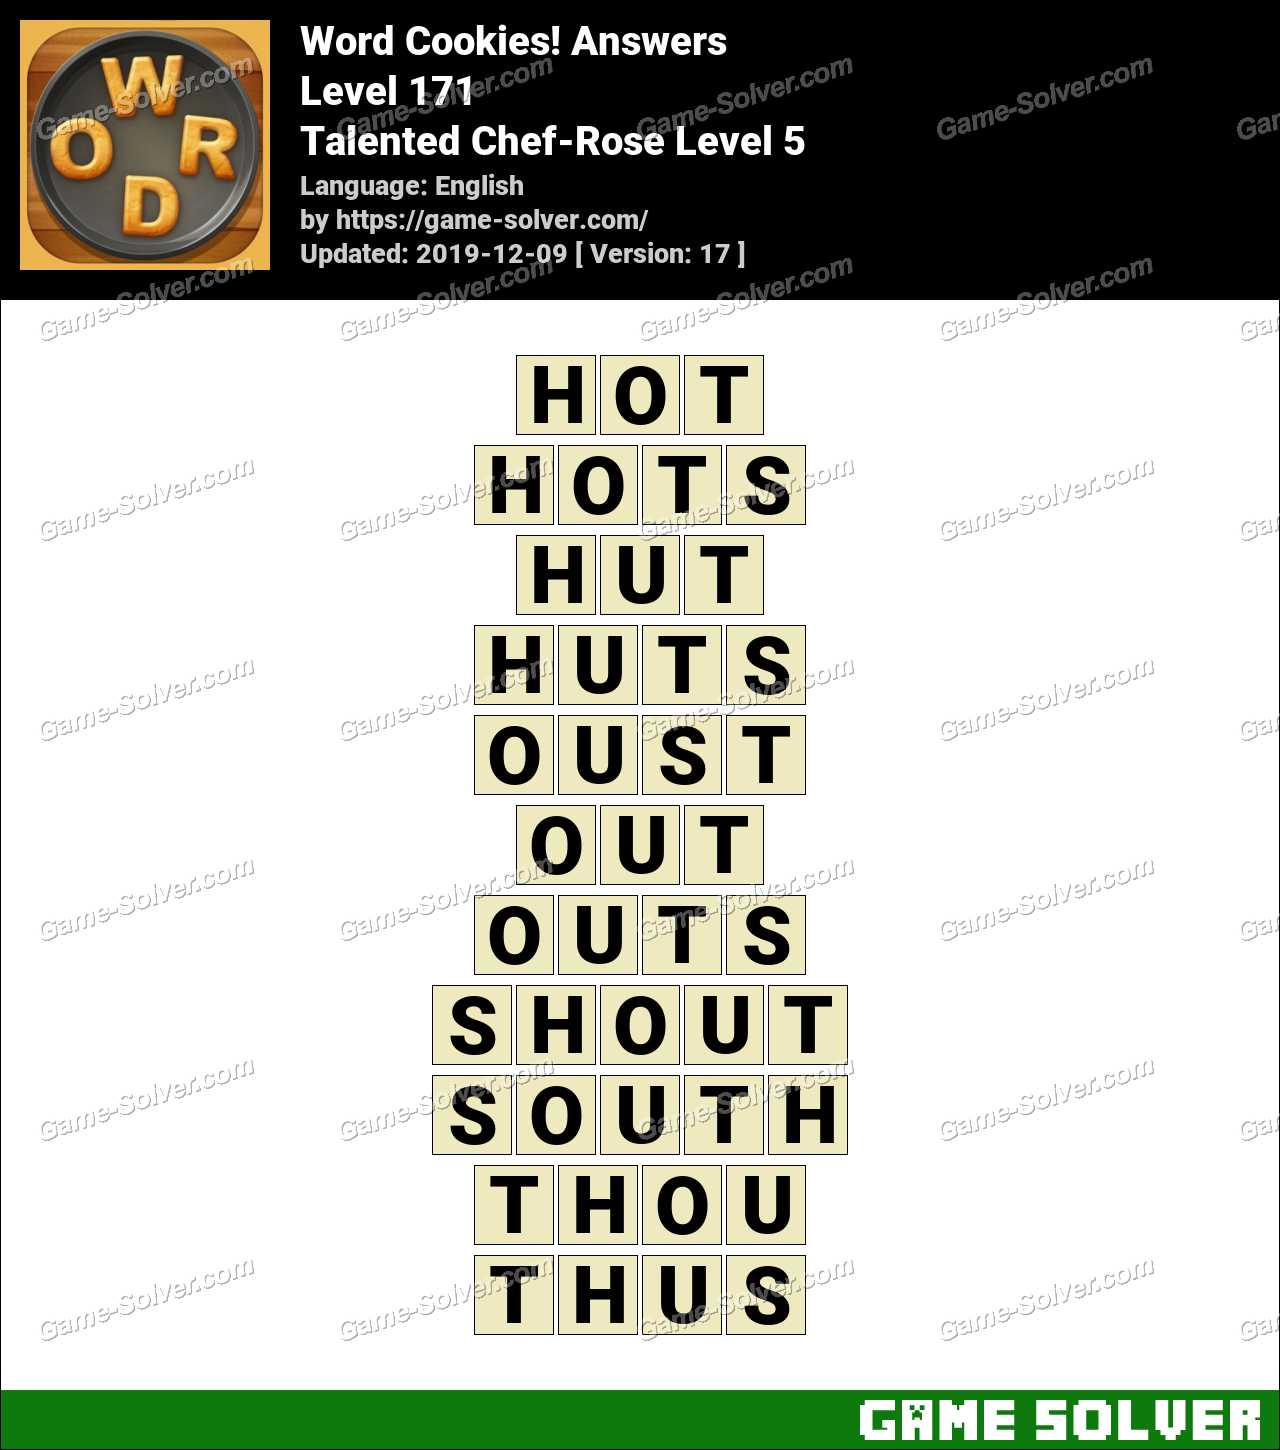 Word Cookies Talented Chef-Rose Level 5 Answers